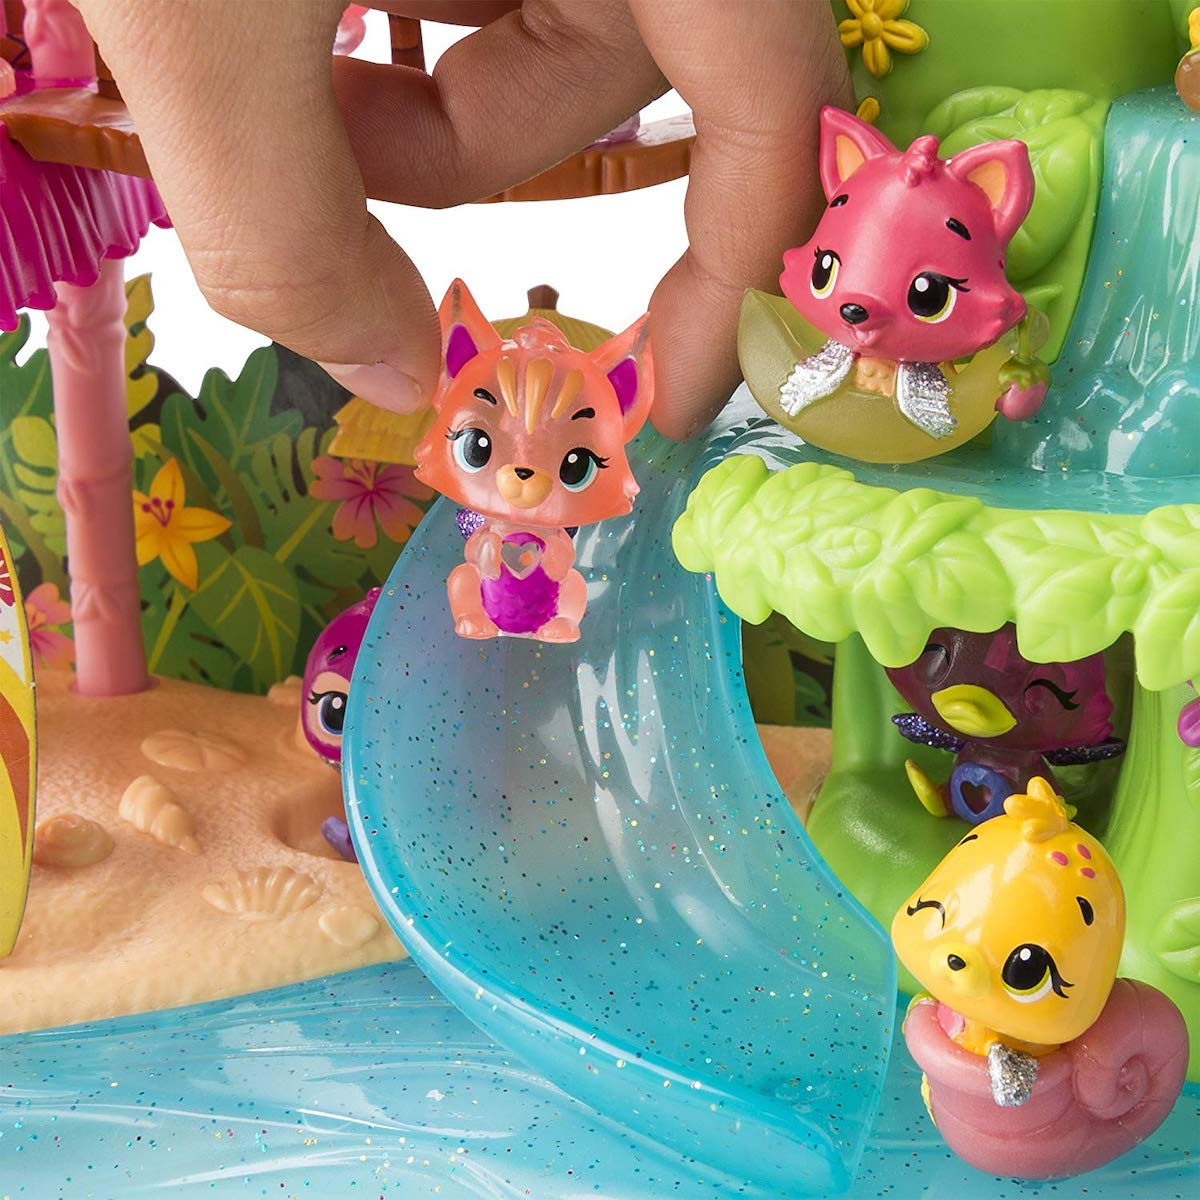 hand holding character in Hatchimals CollEGGtibles Season 4 Tropical Party Playset